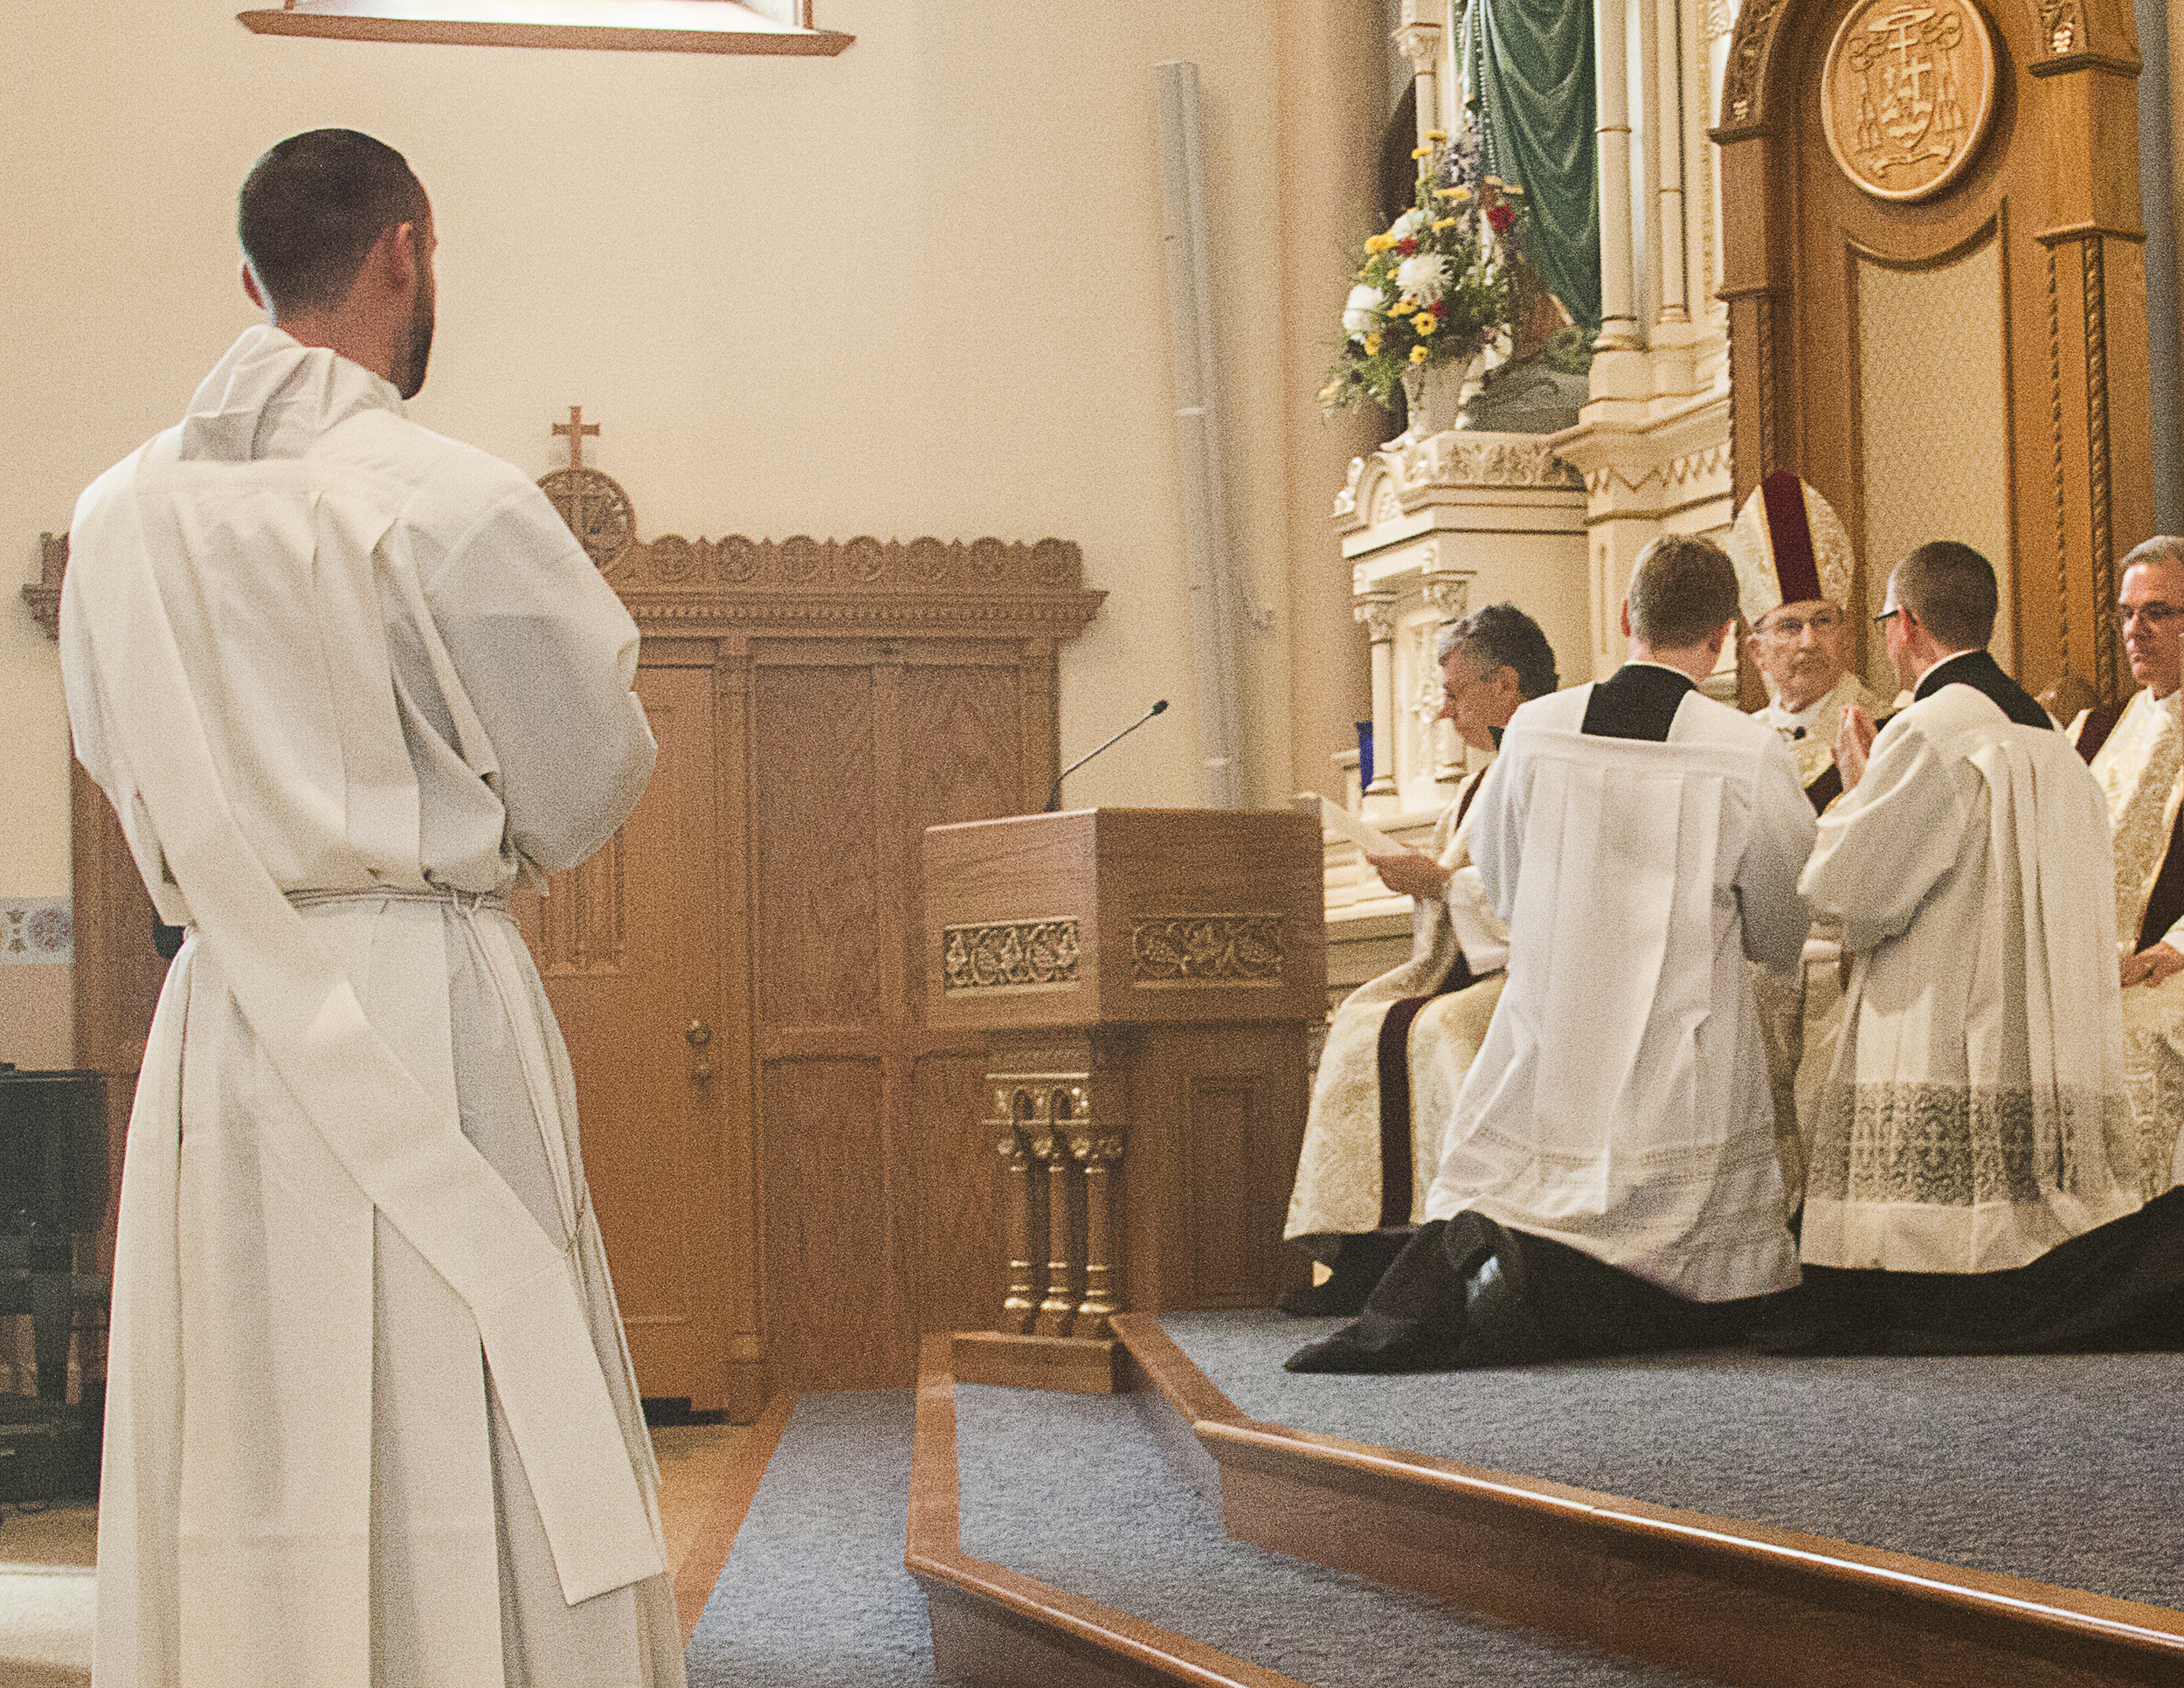 Ordination_0205.jpg